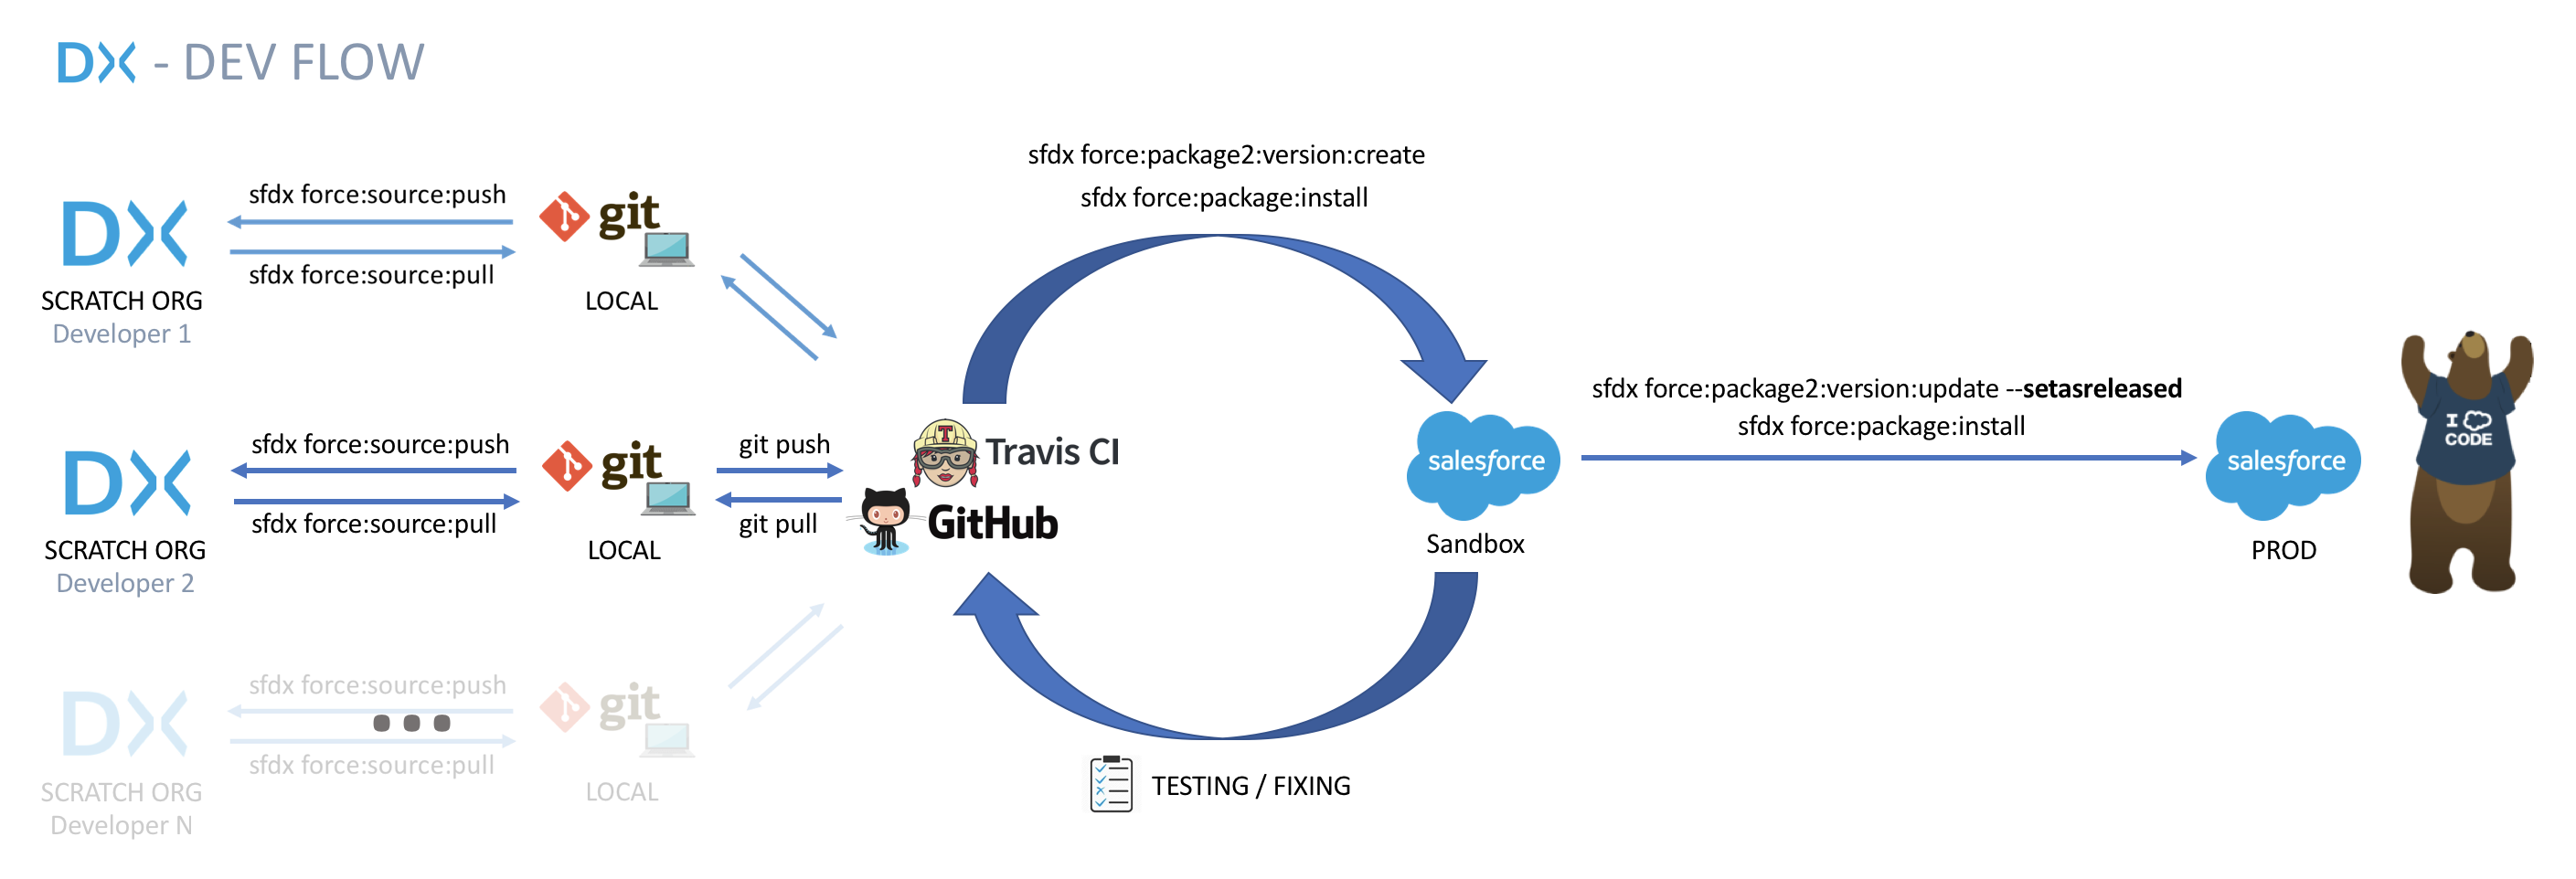 Our move to Salesforce DX and Developer-Controlled Packages